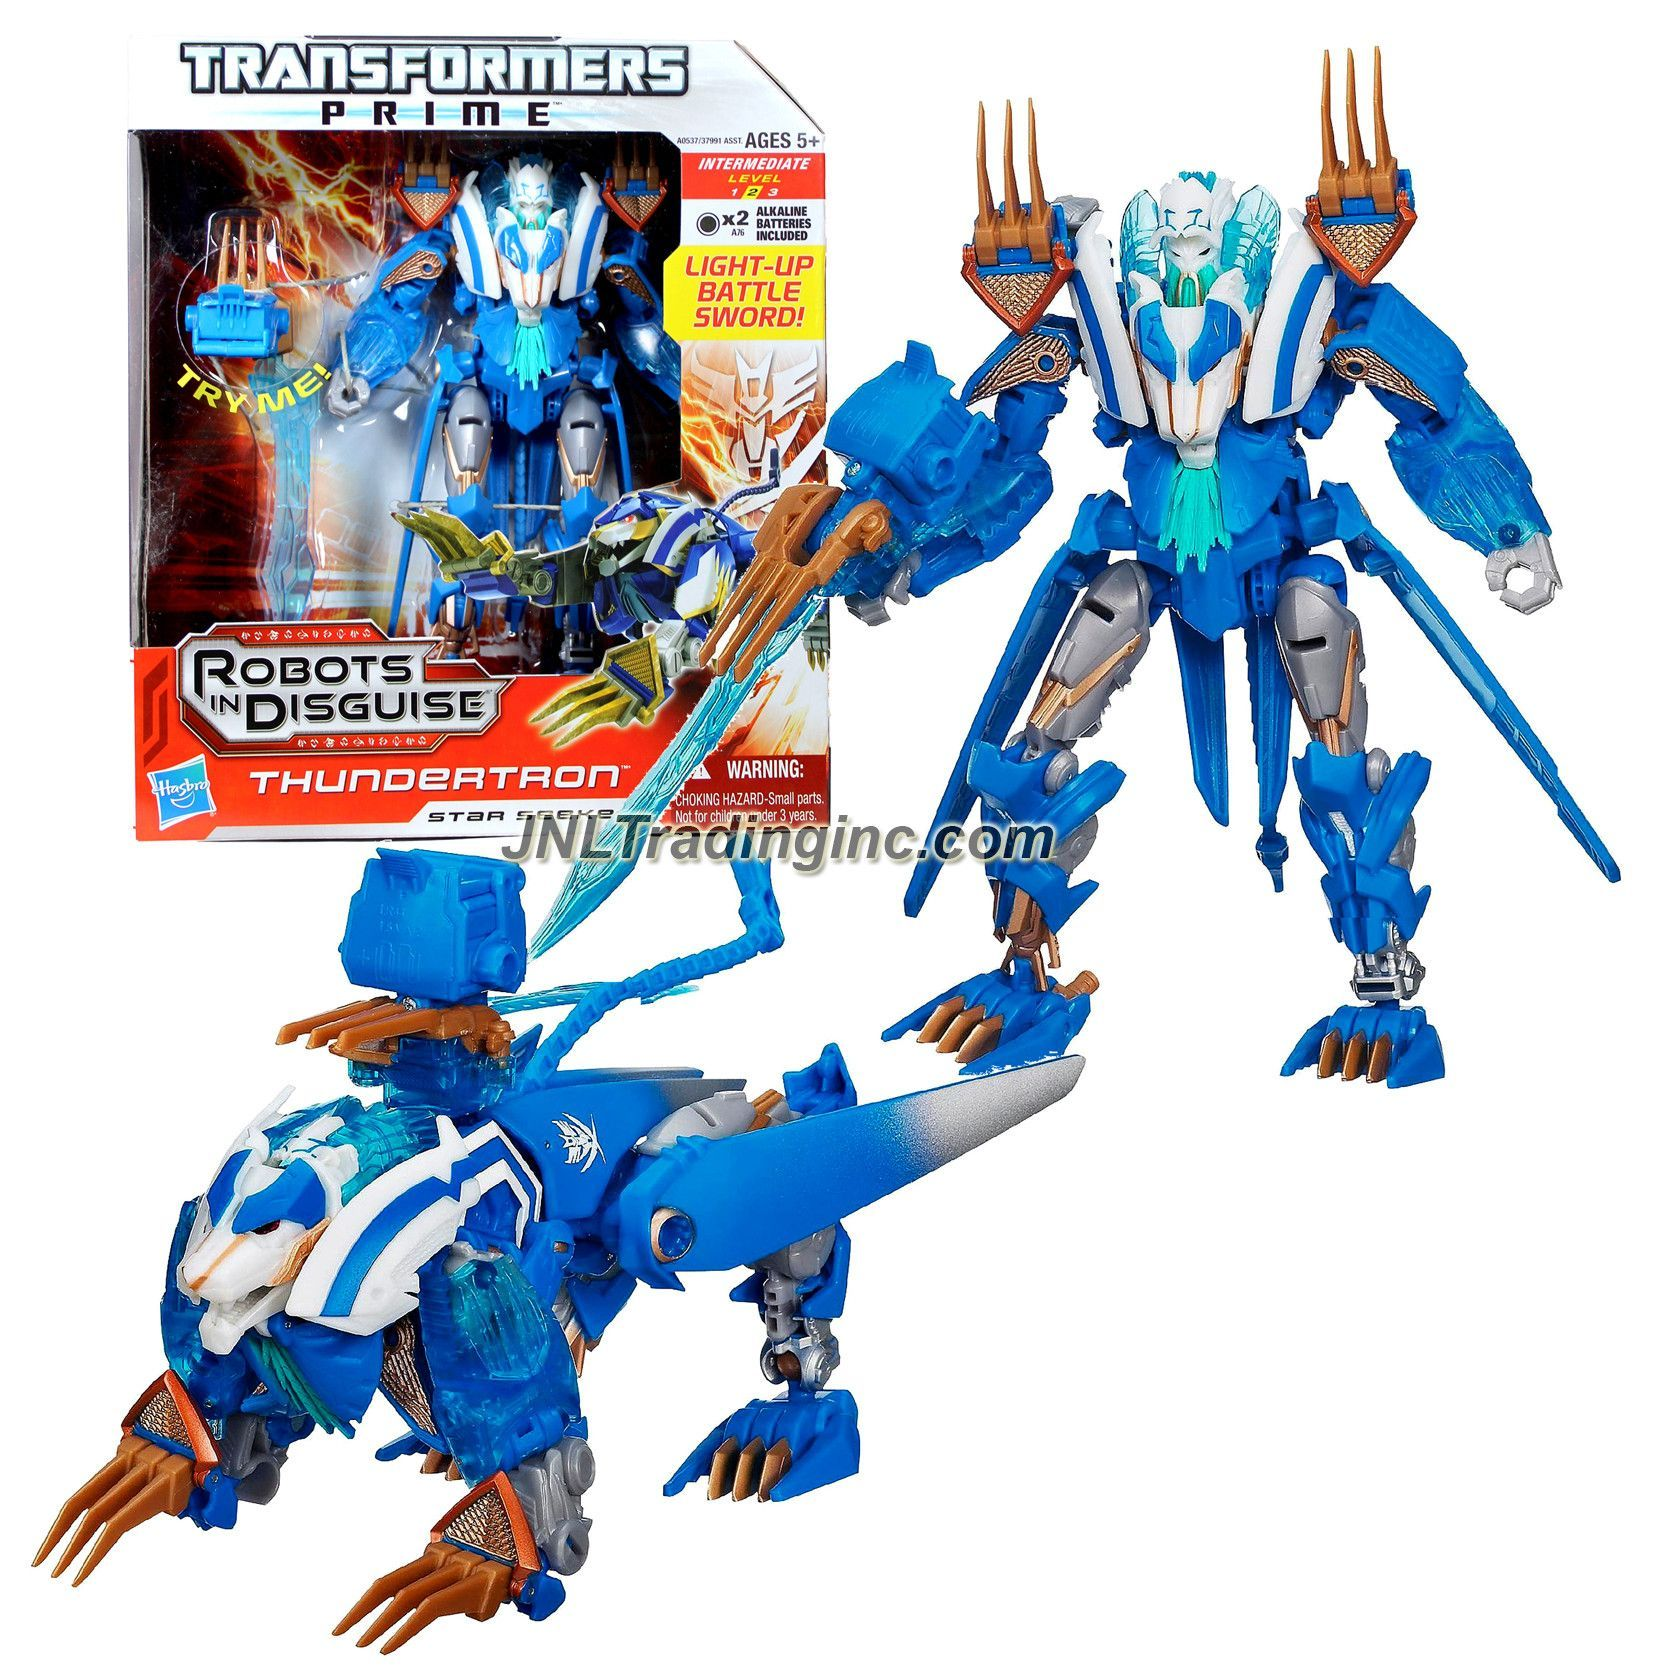 2012 Transformers Prime Robots in Disguise thundertron Star Seeker nouveau